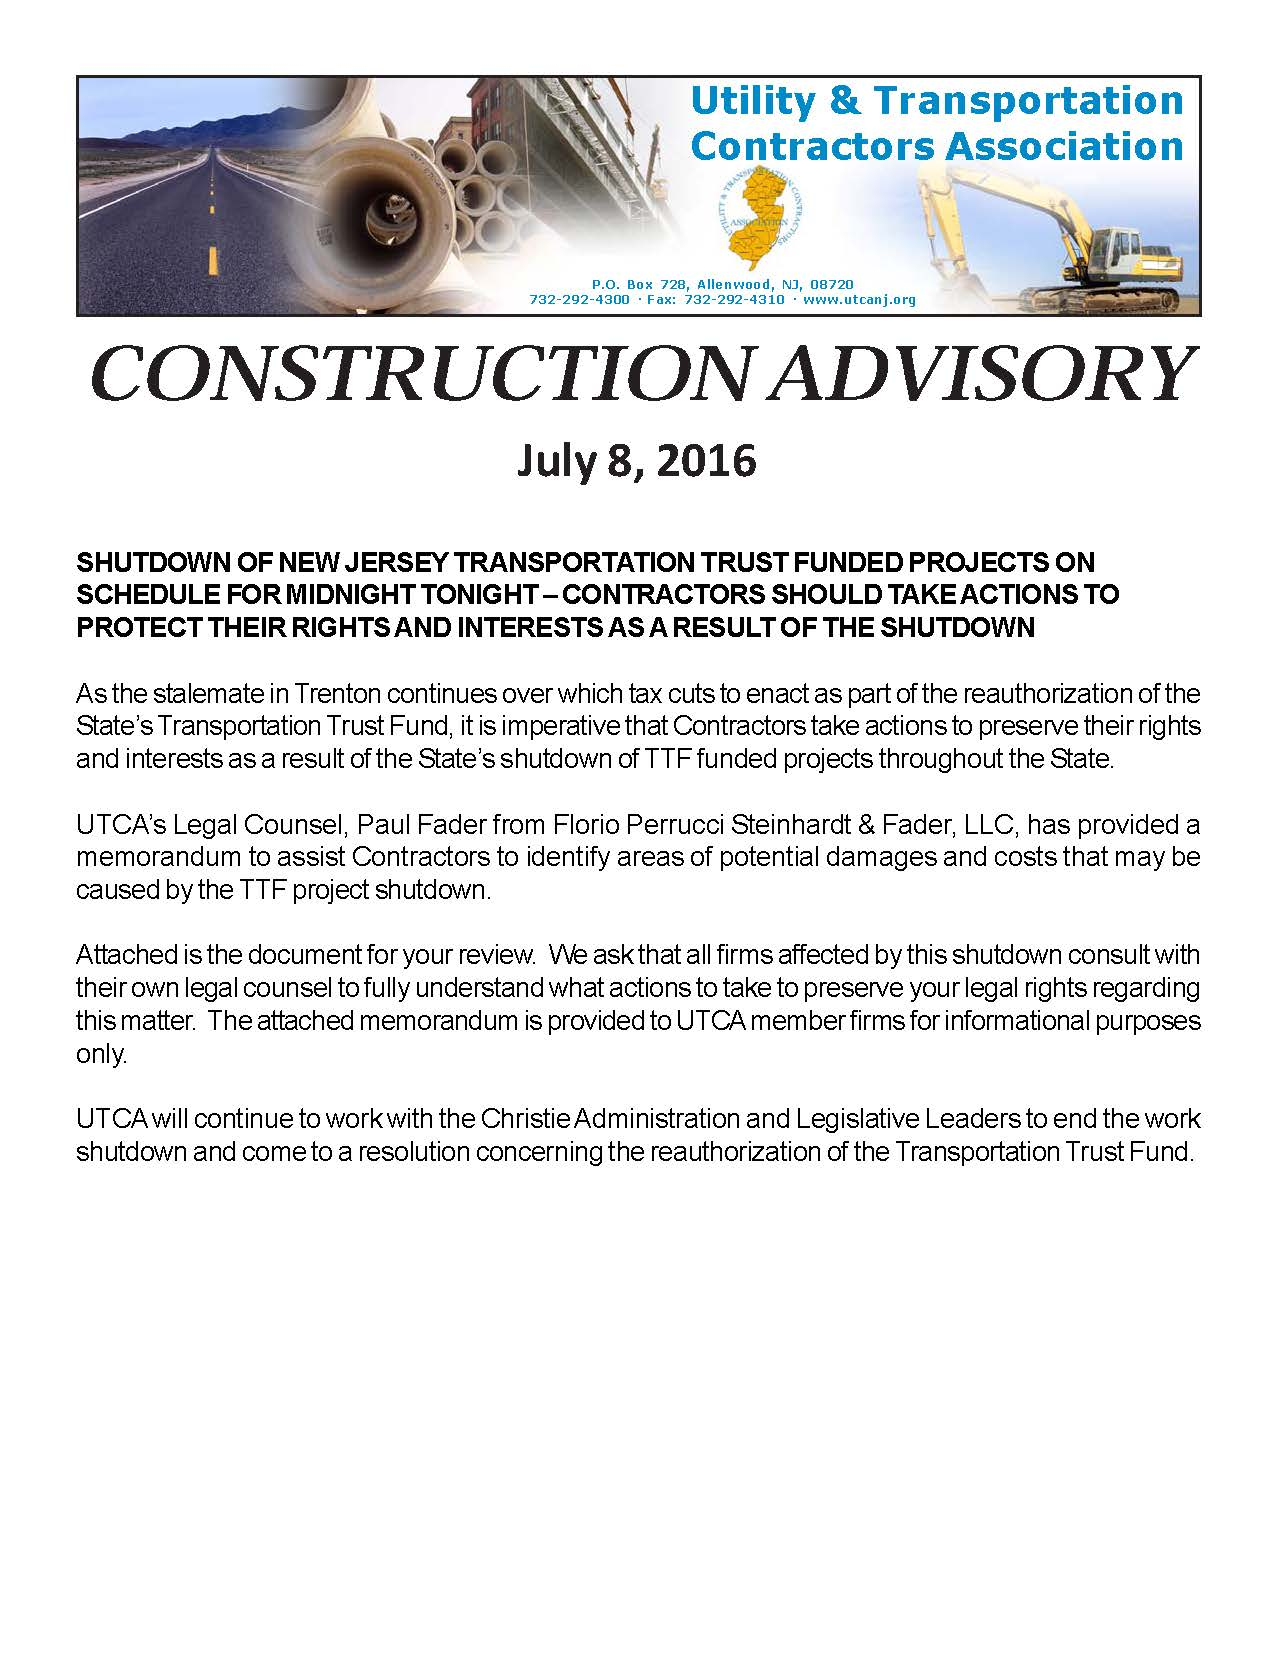 UTCA_Construction_Advisory_7-8_Page_1.jpg